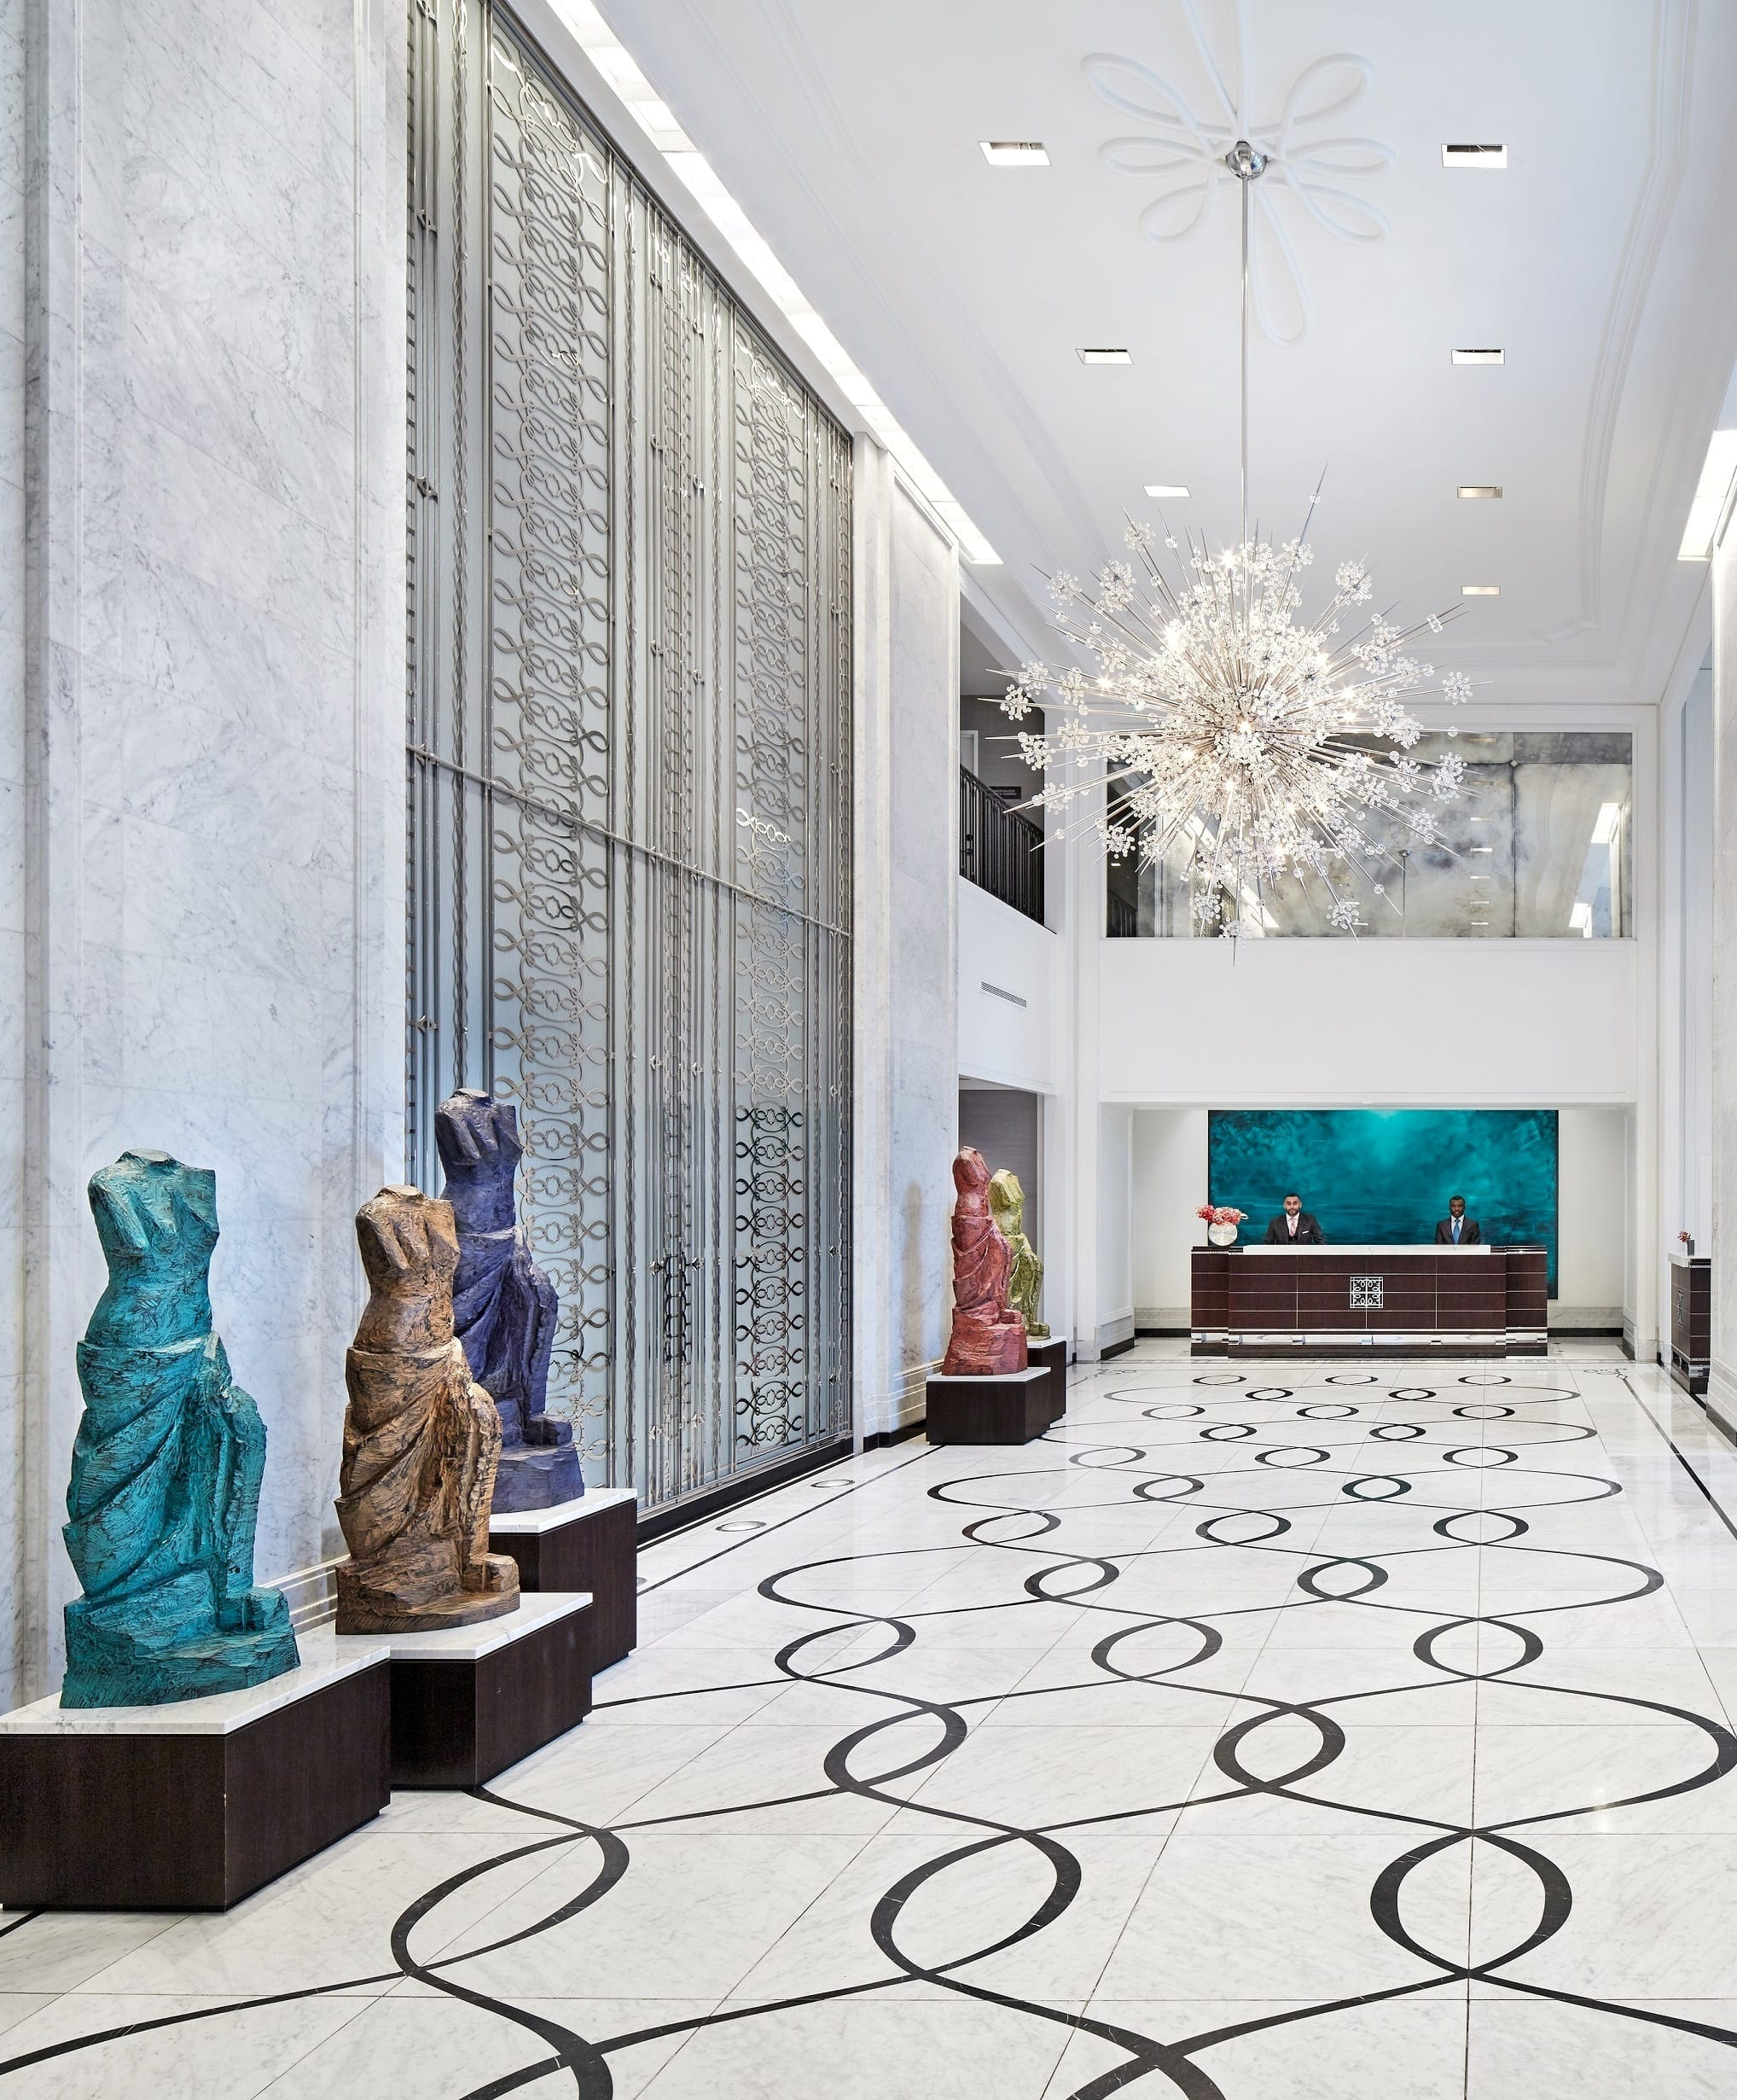 Luxury Downtown Chicago Hotel